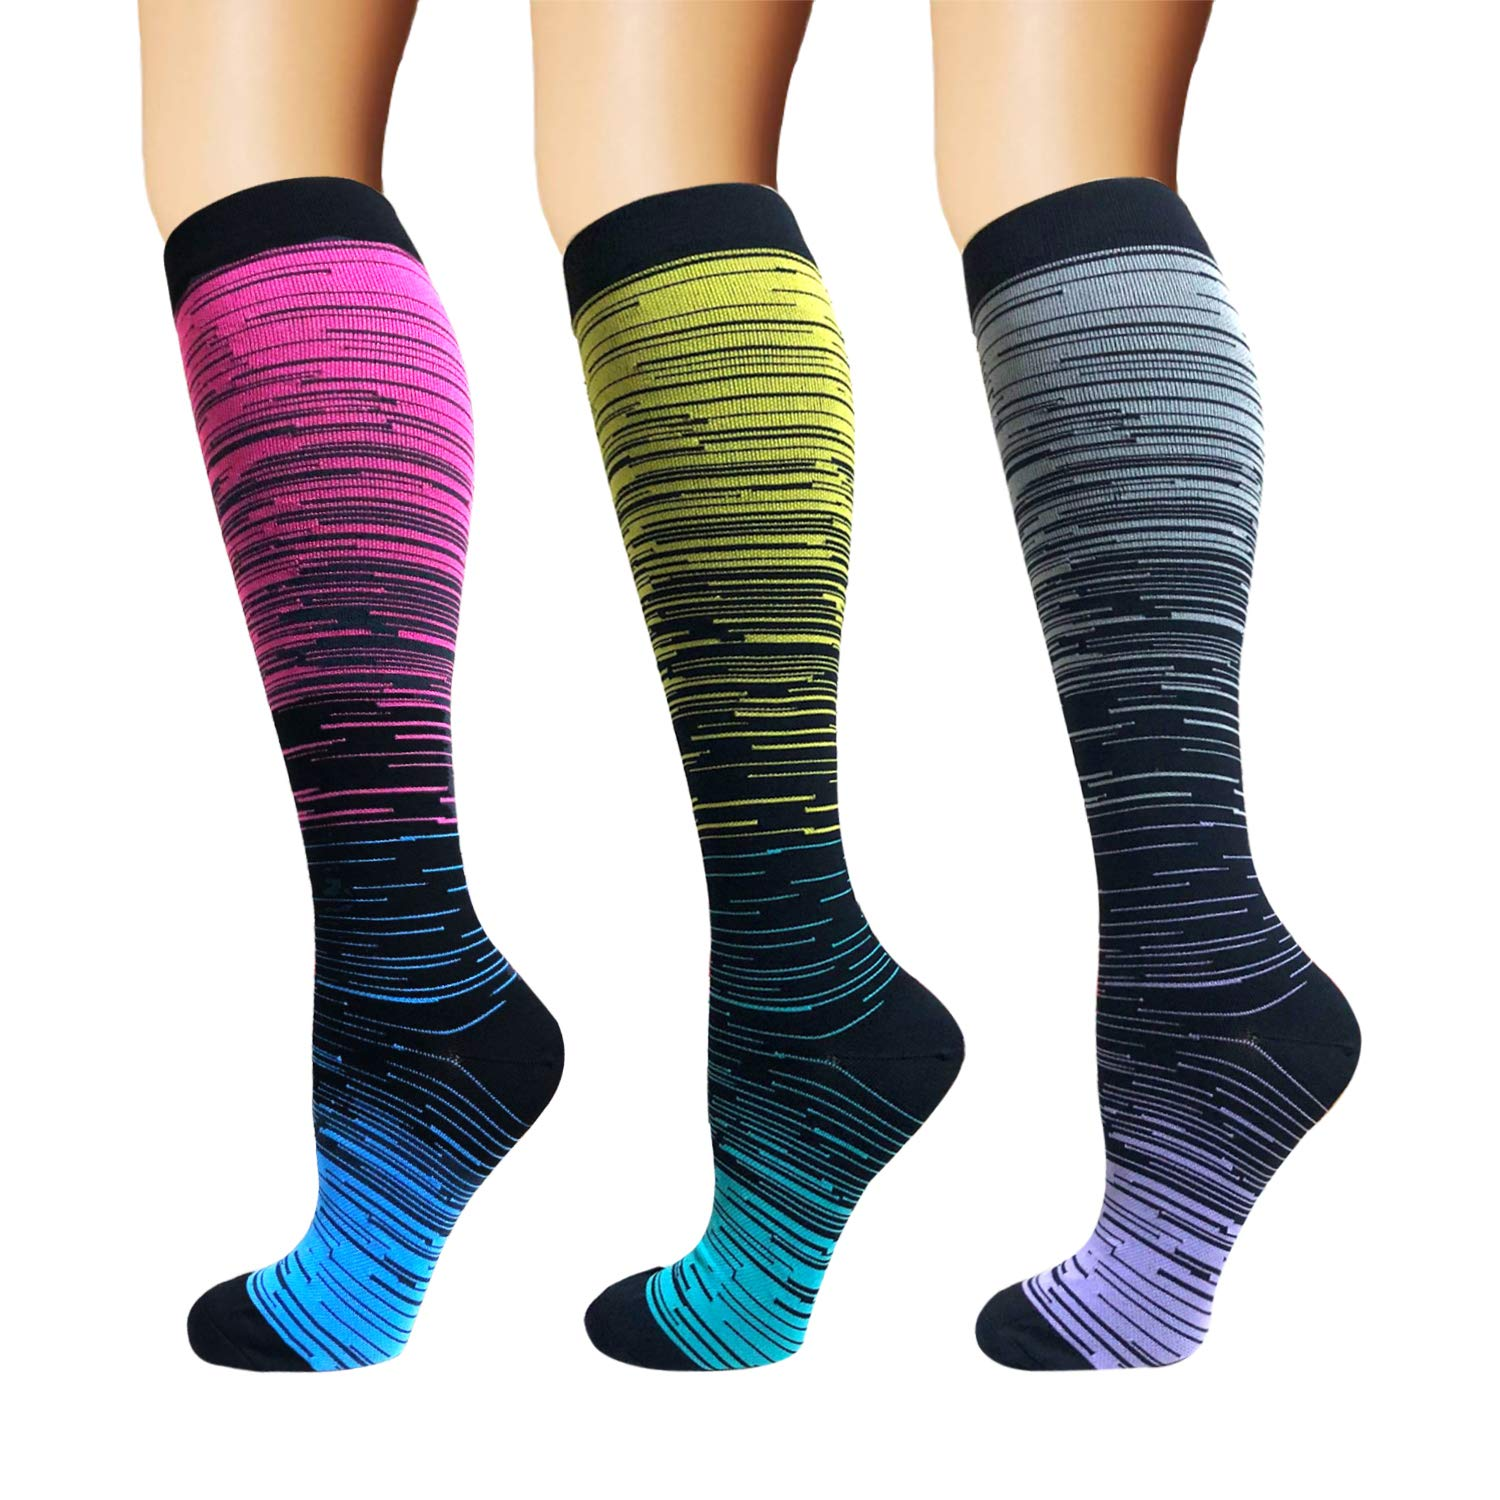 Brothock Nylon Compression Socks Women And Men Stockings Best Medical Nursing Hiking Travel Flight Socks Running Fitness Socks